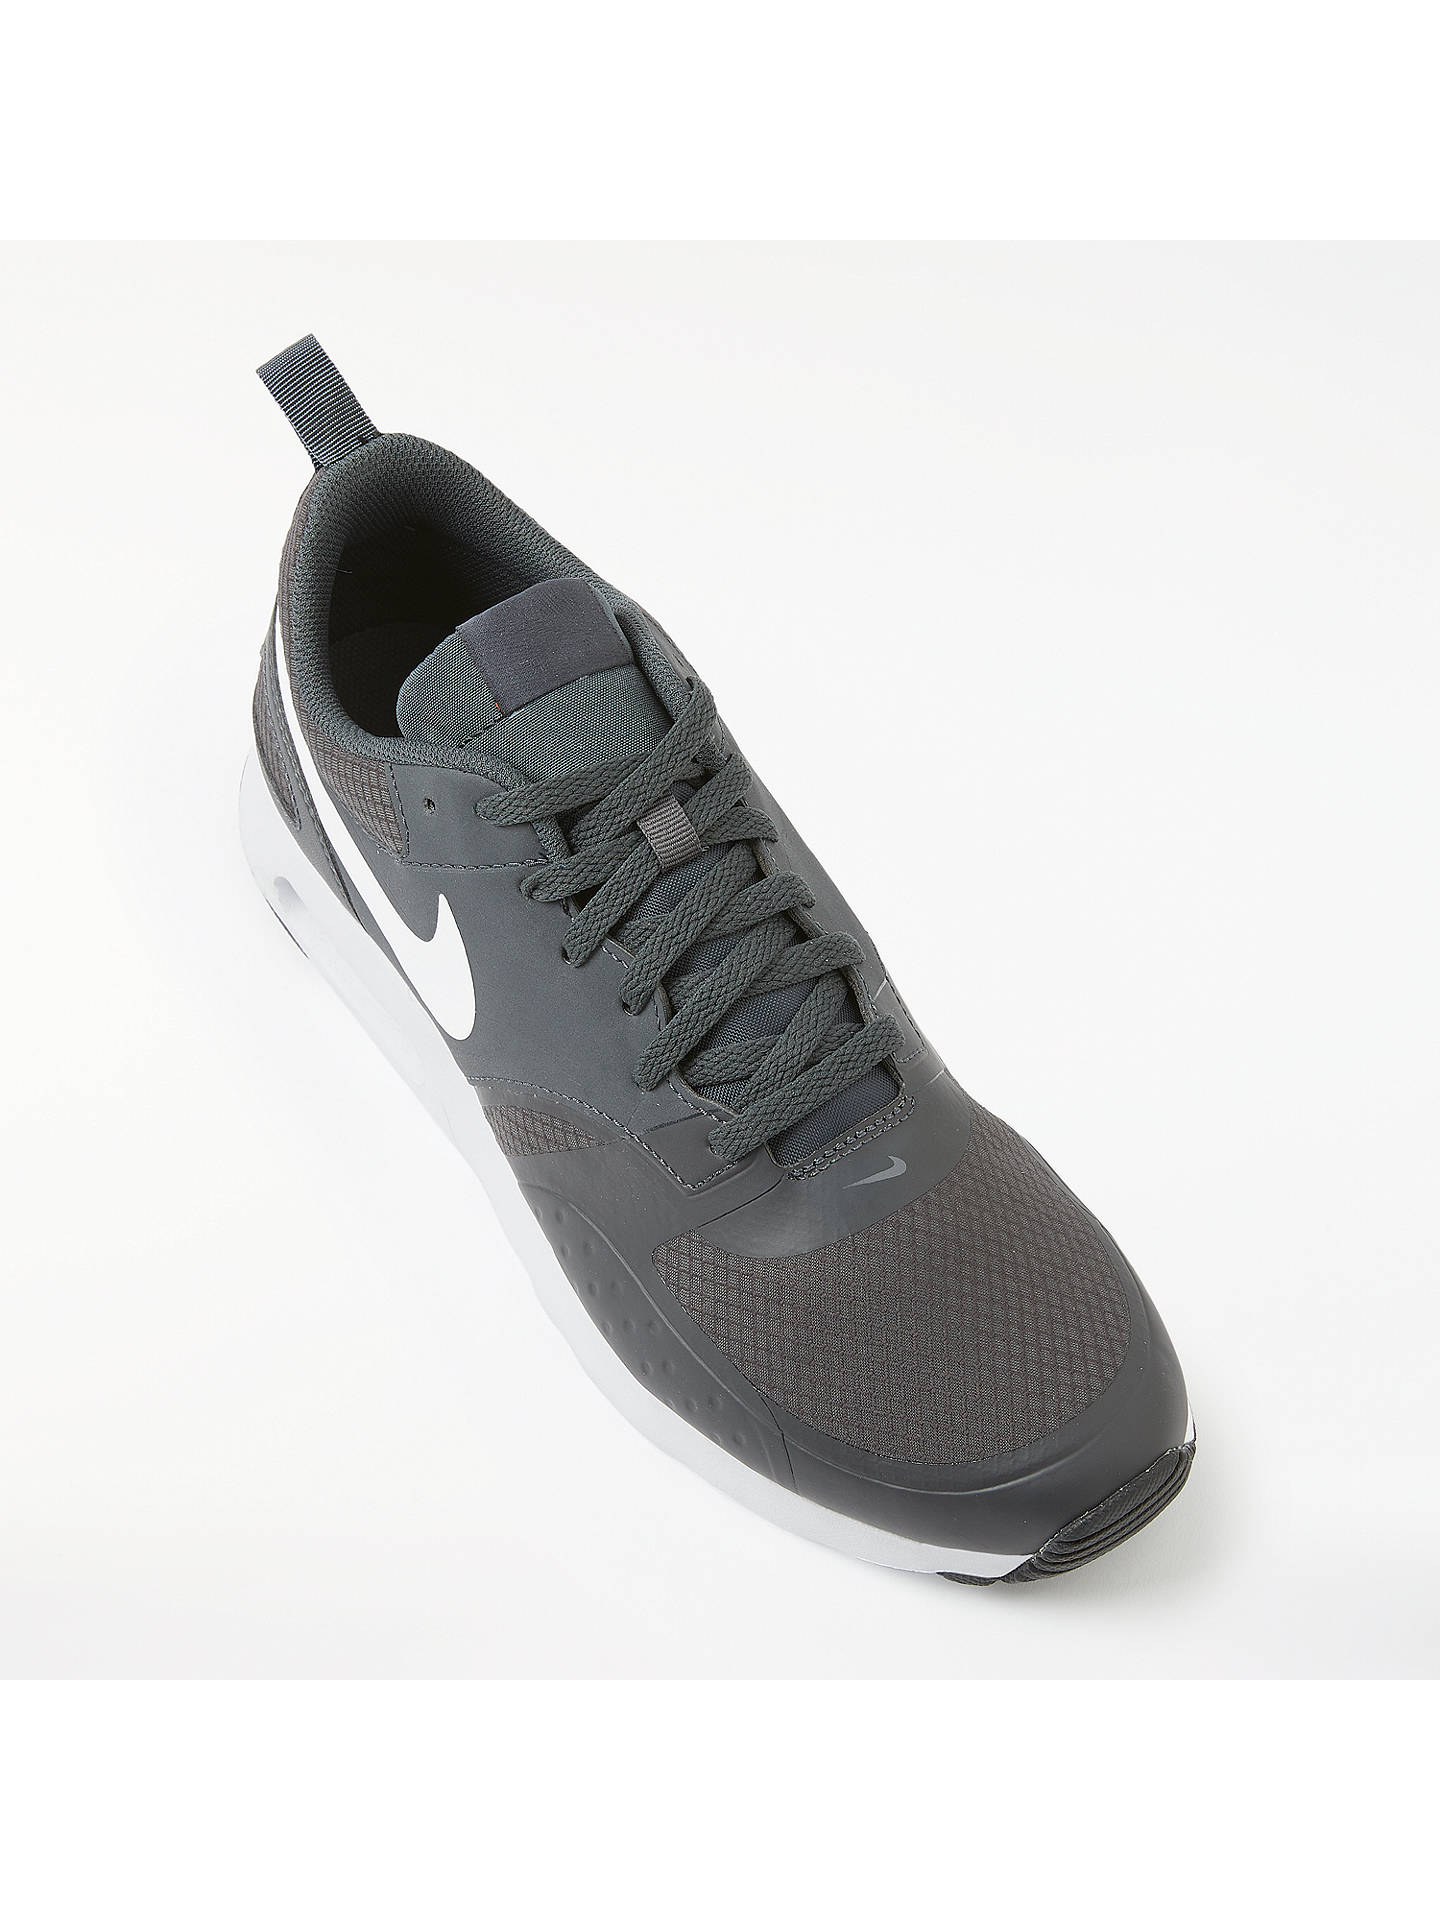 Nike Air Max Vision Anthracite | NetComm Wireless